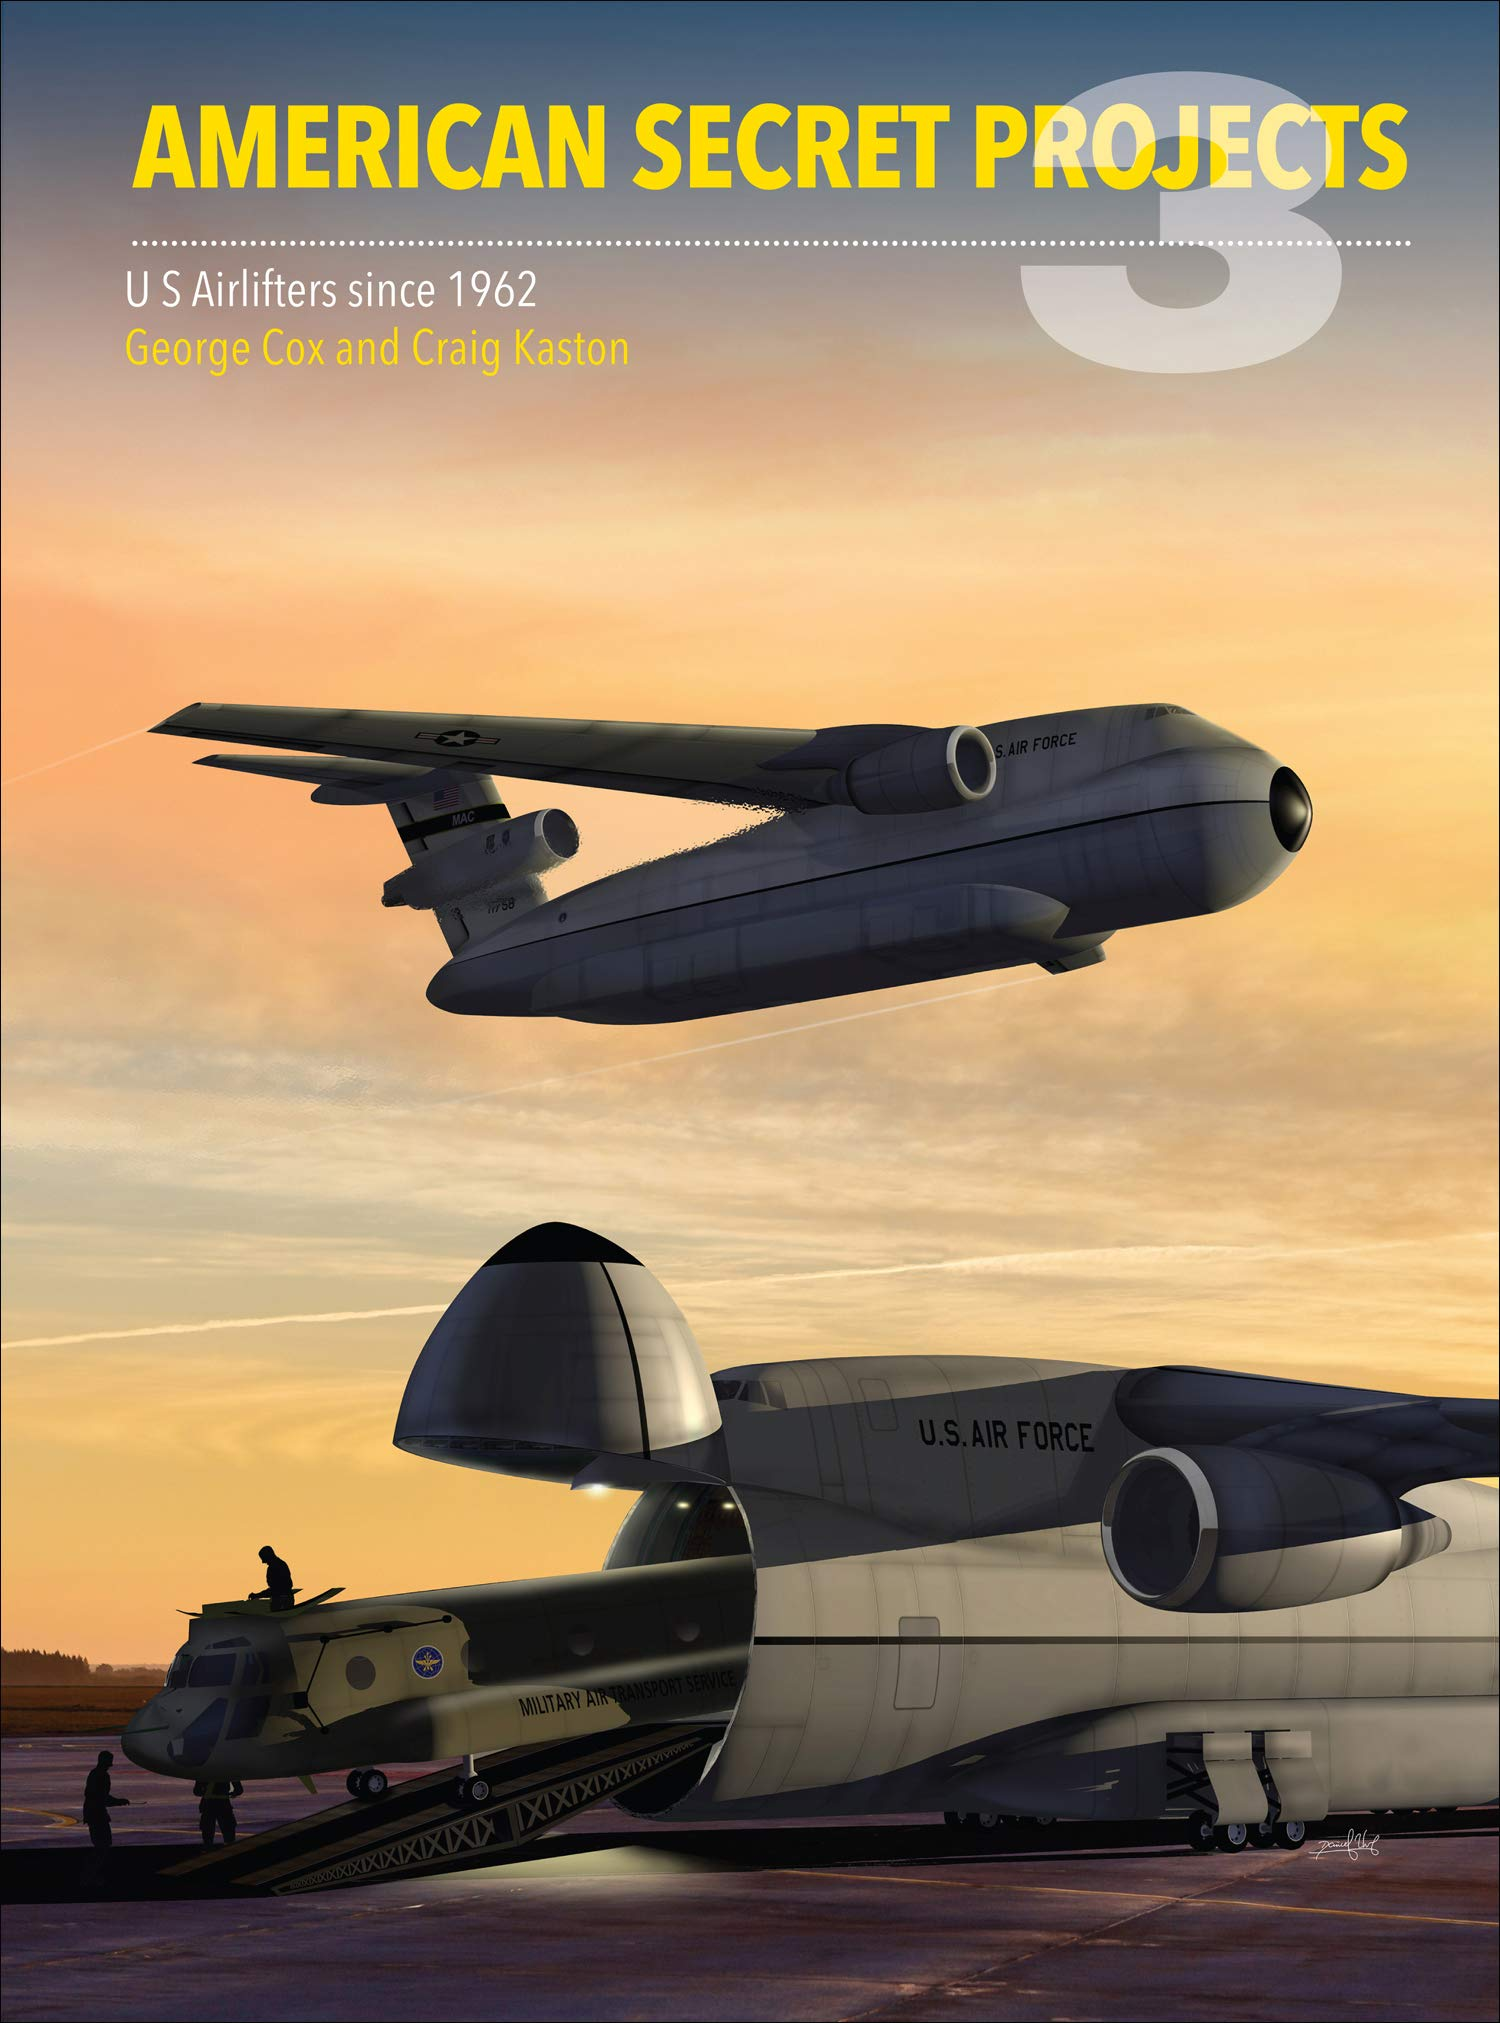 Airlifters Since 1962 U.S American Secret Projects 3